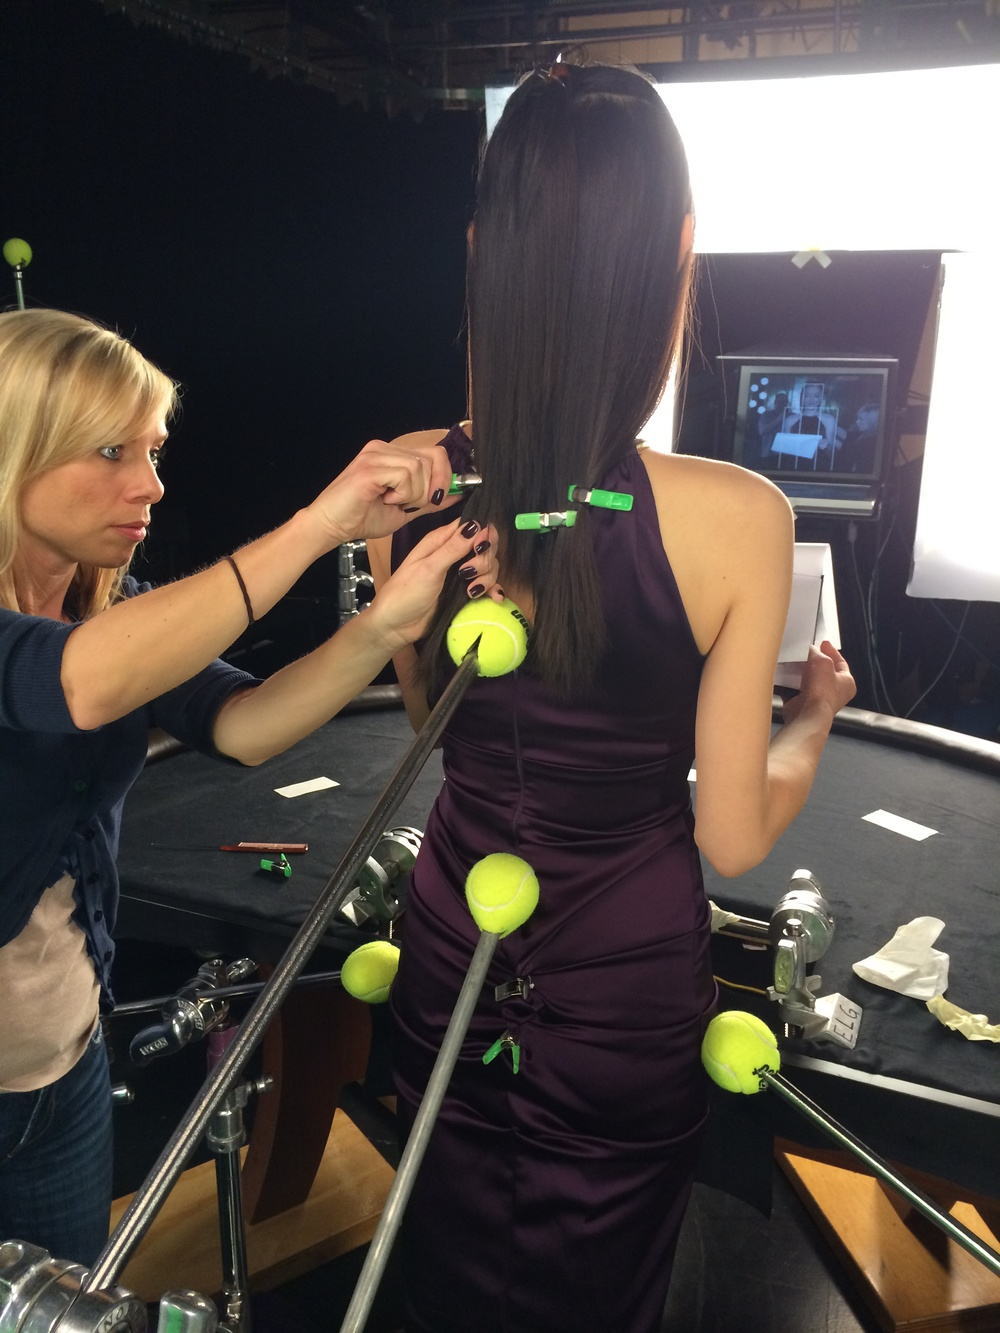 Clips, hairspray and tennis balls... ACTION!